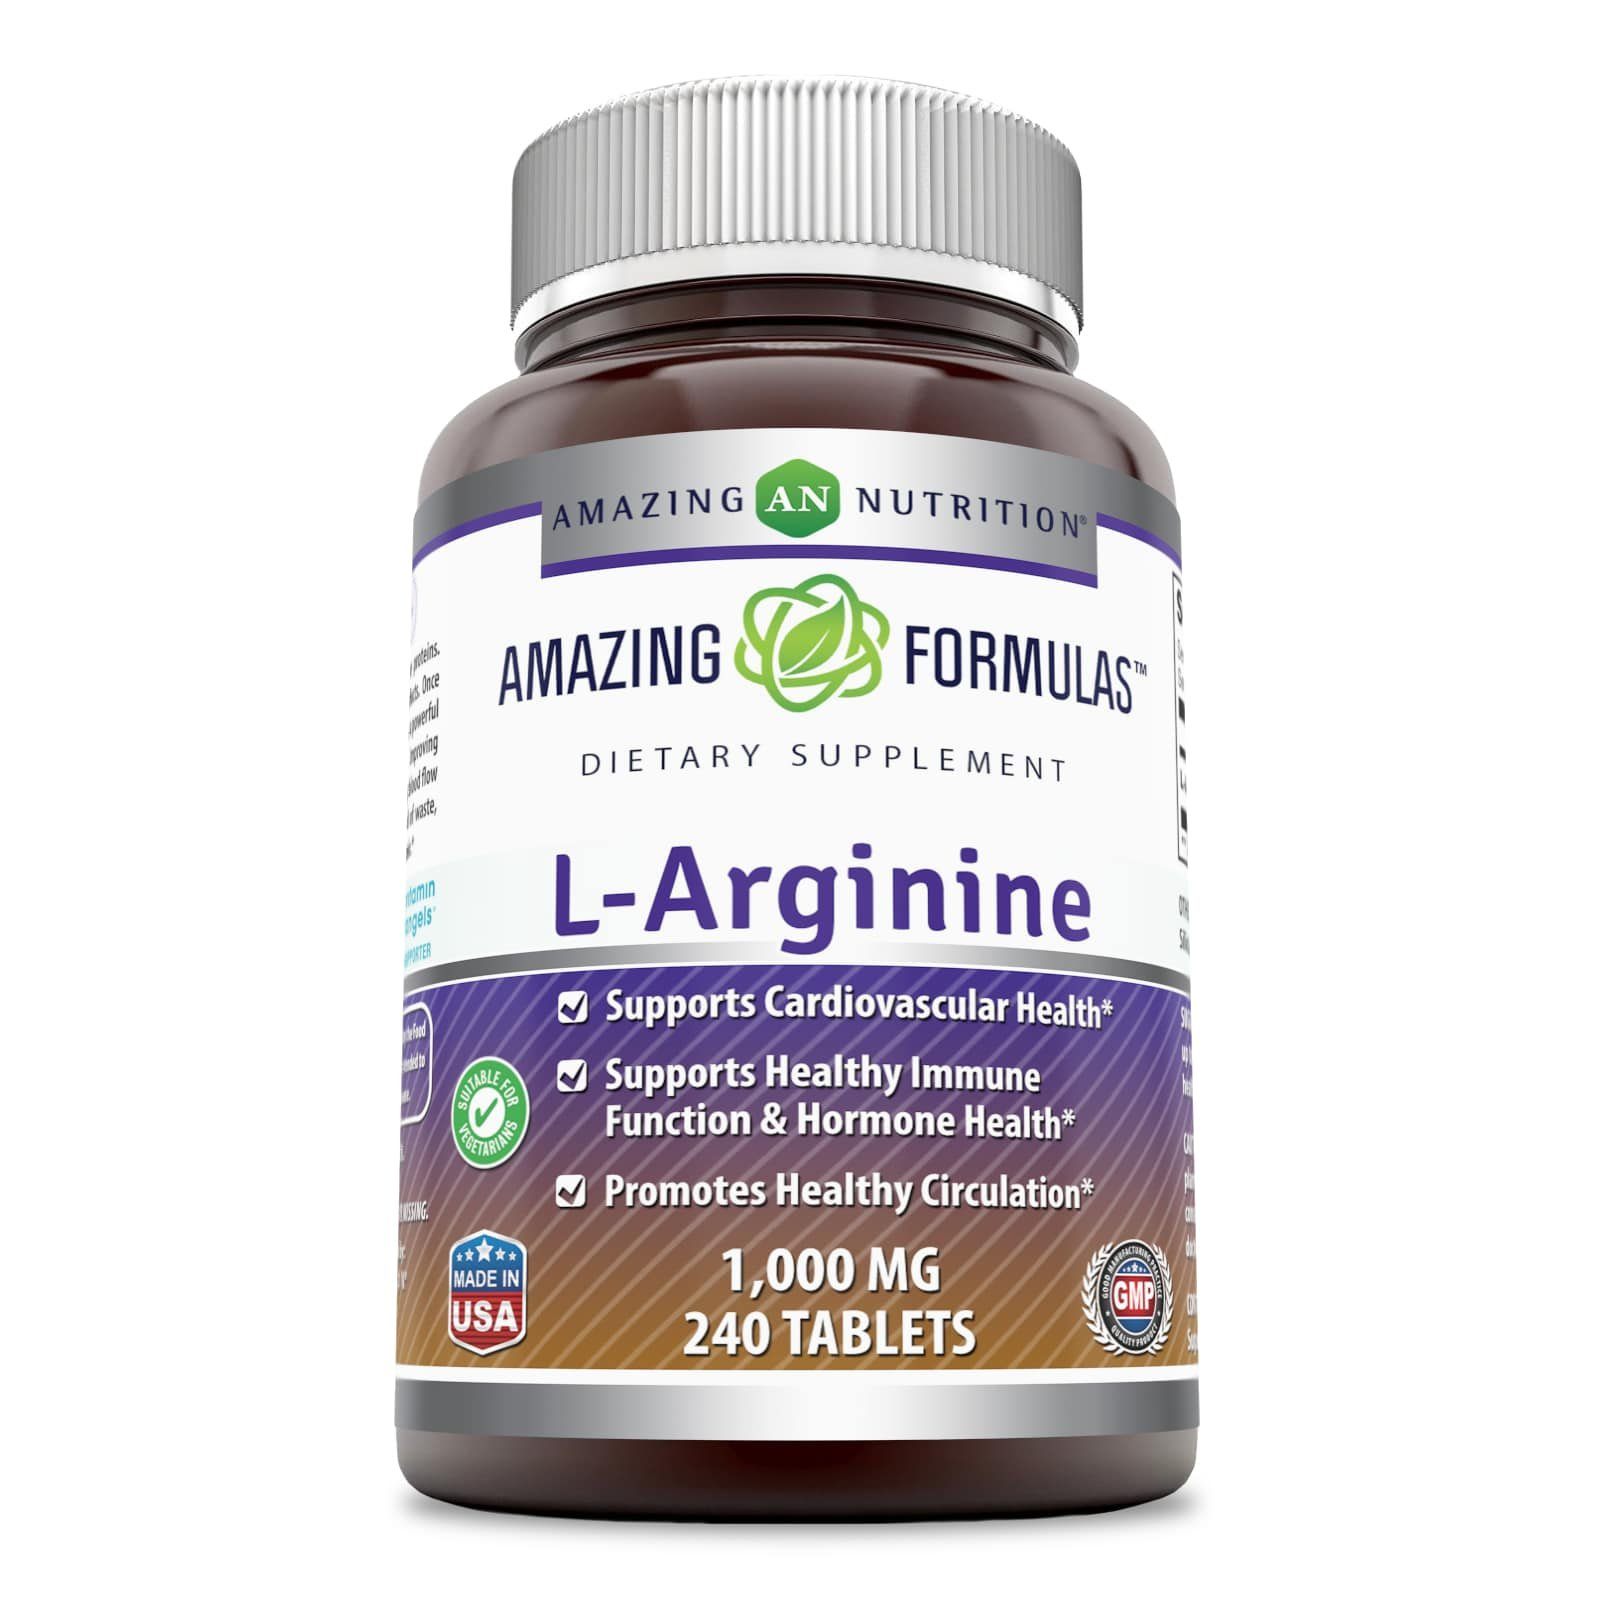 Amazing Formulas L-Arginine - 1000 Mg, 240 Tablets - Supports Cardiovascular Health - Supports Immune Function - Promotes Healthy Circulation.